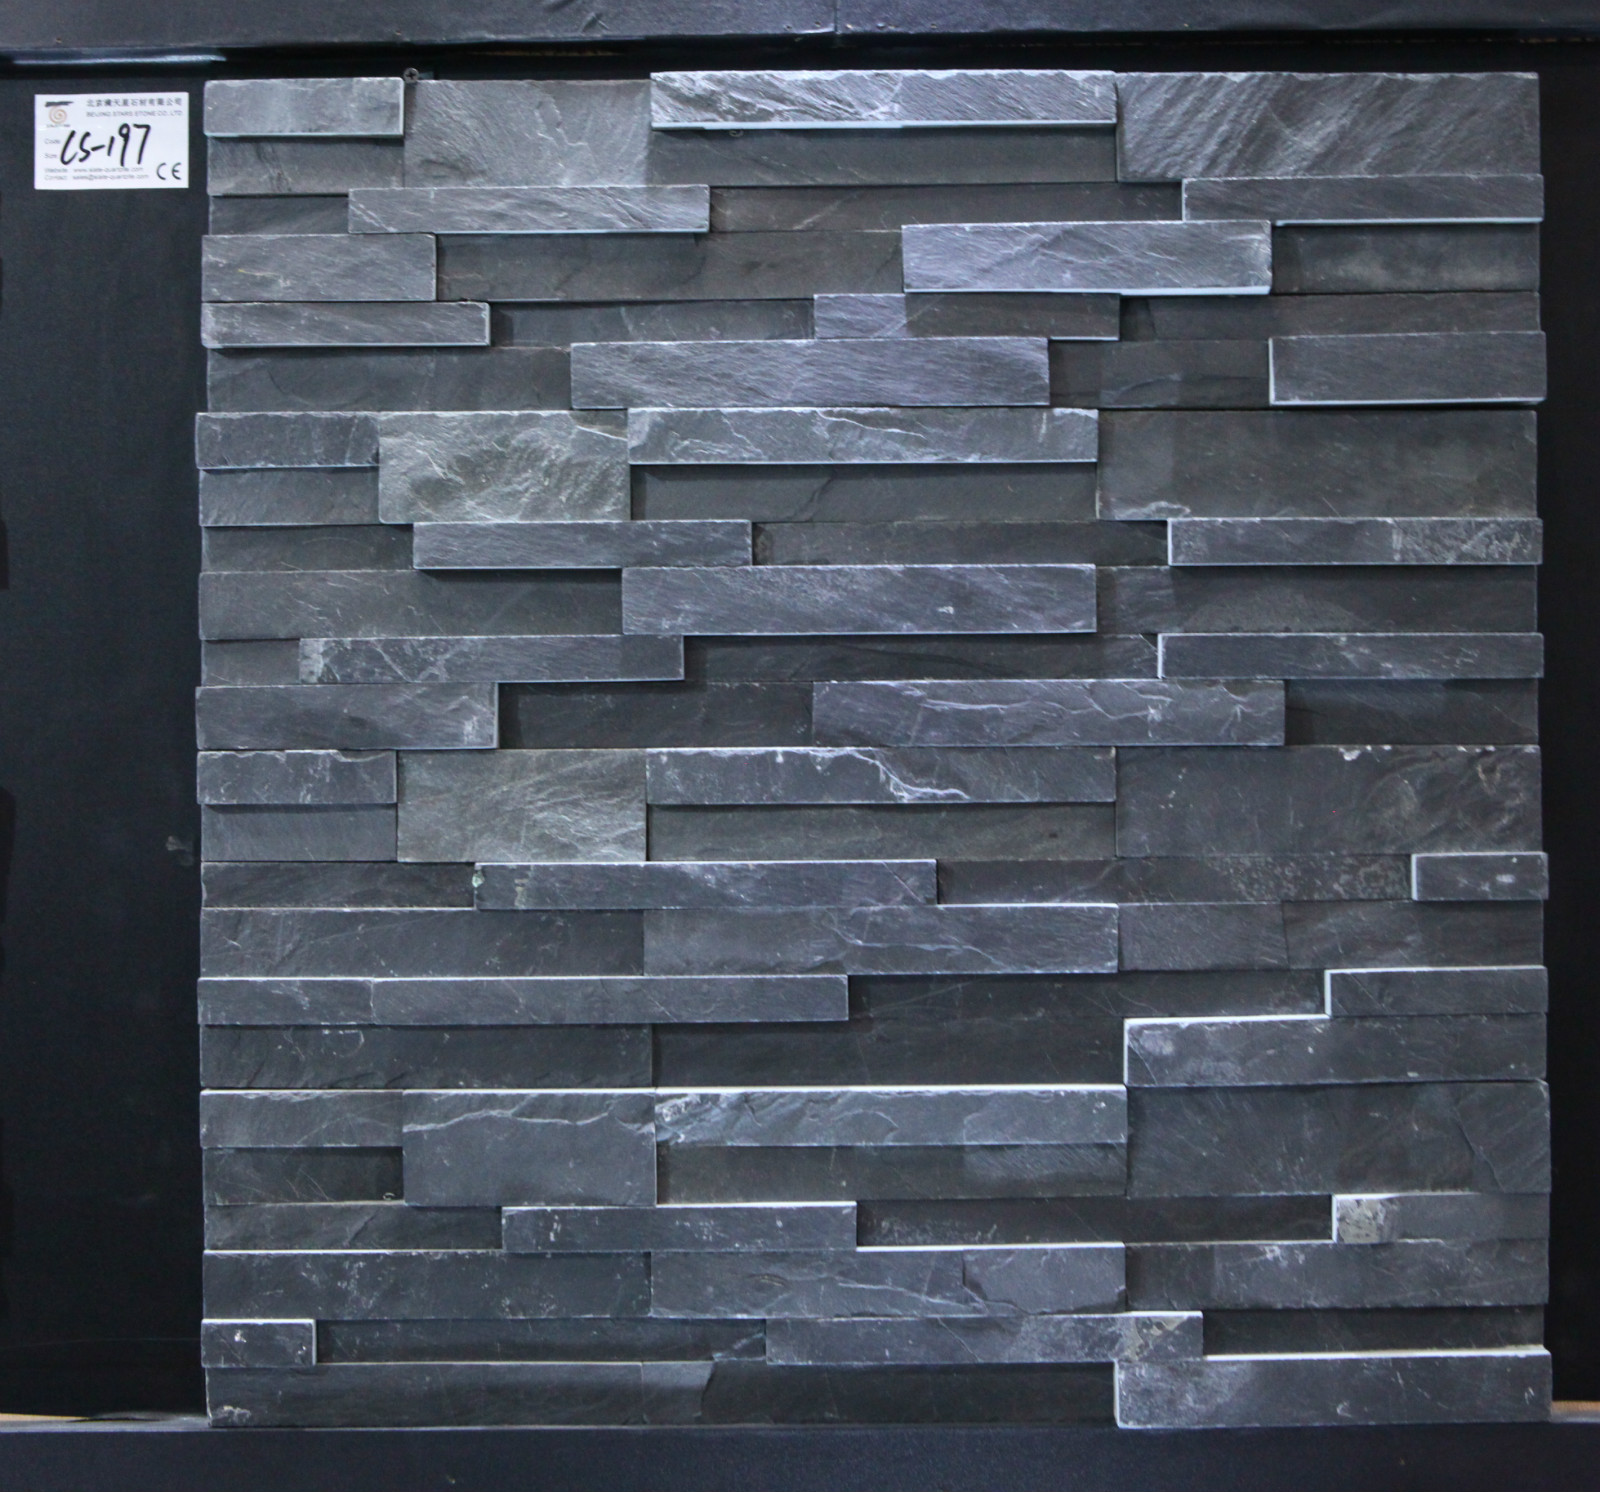 Black stone cladding,natural stone wall cladding slate,natural stack stone wall cladding,exterior cladding stone,imitation stone wall cladding,black stone wall cladding